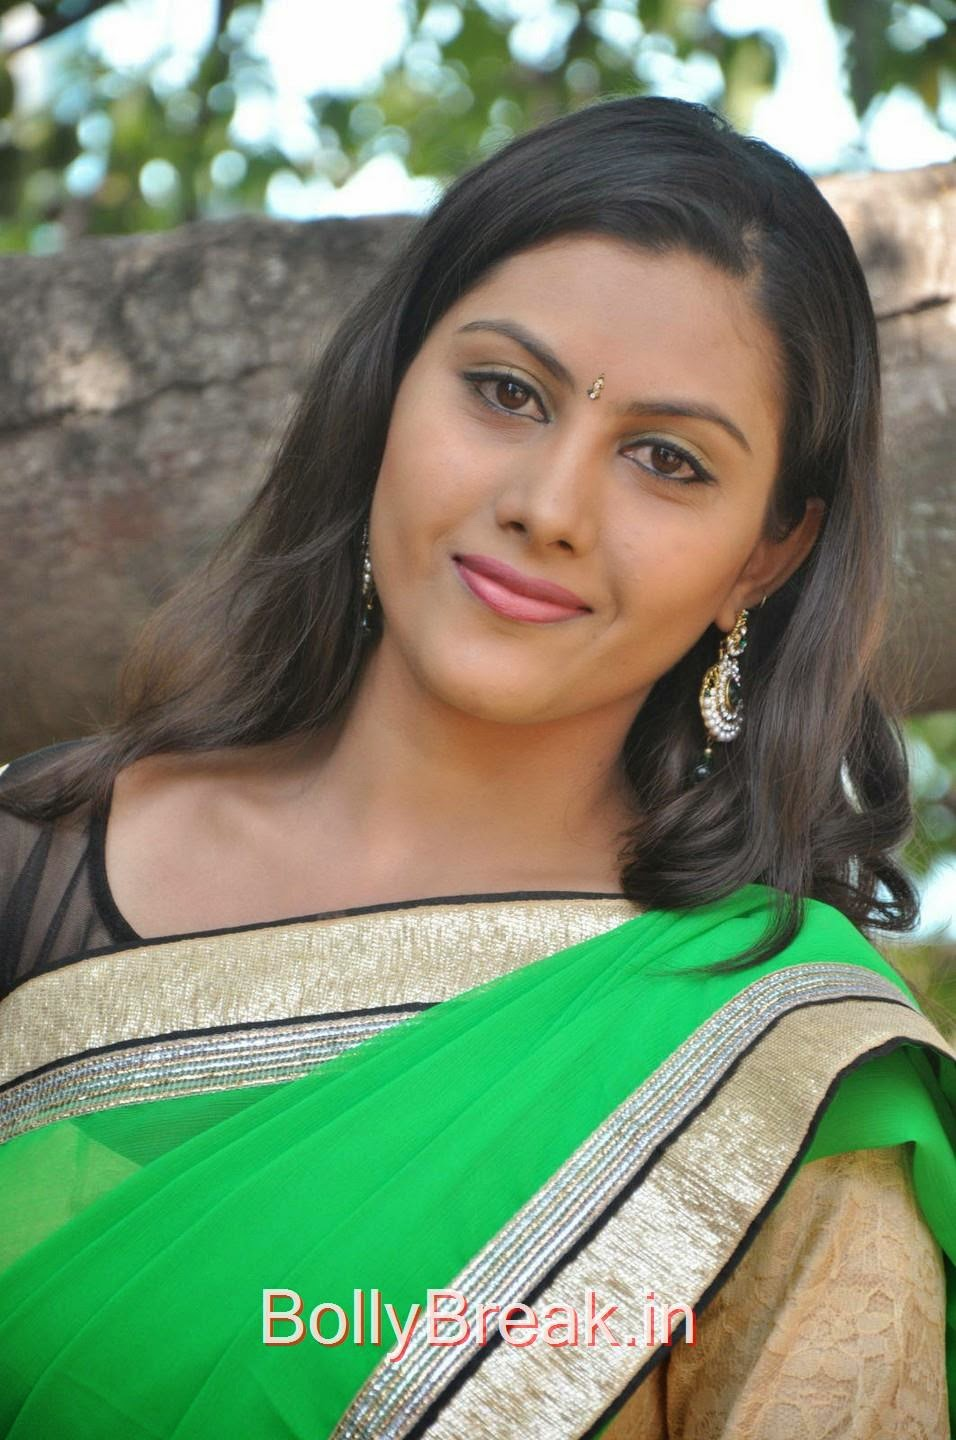 Tollywood Actress Priyanka, Hot Pics Of Priyanka In Green Saree from SS Art Productions Production No 1 Movie